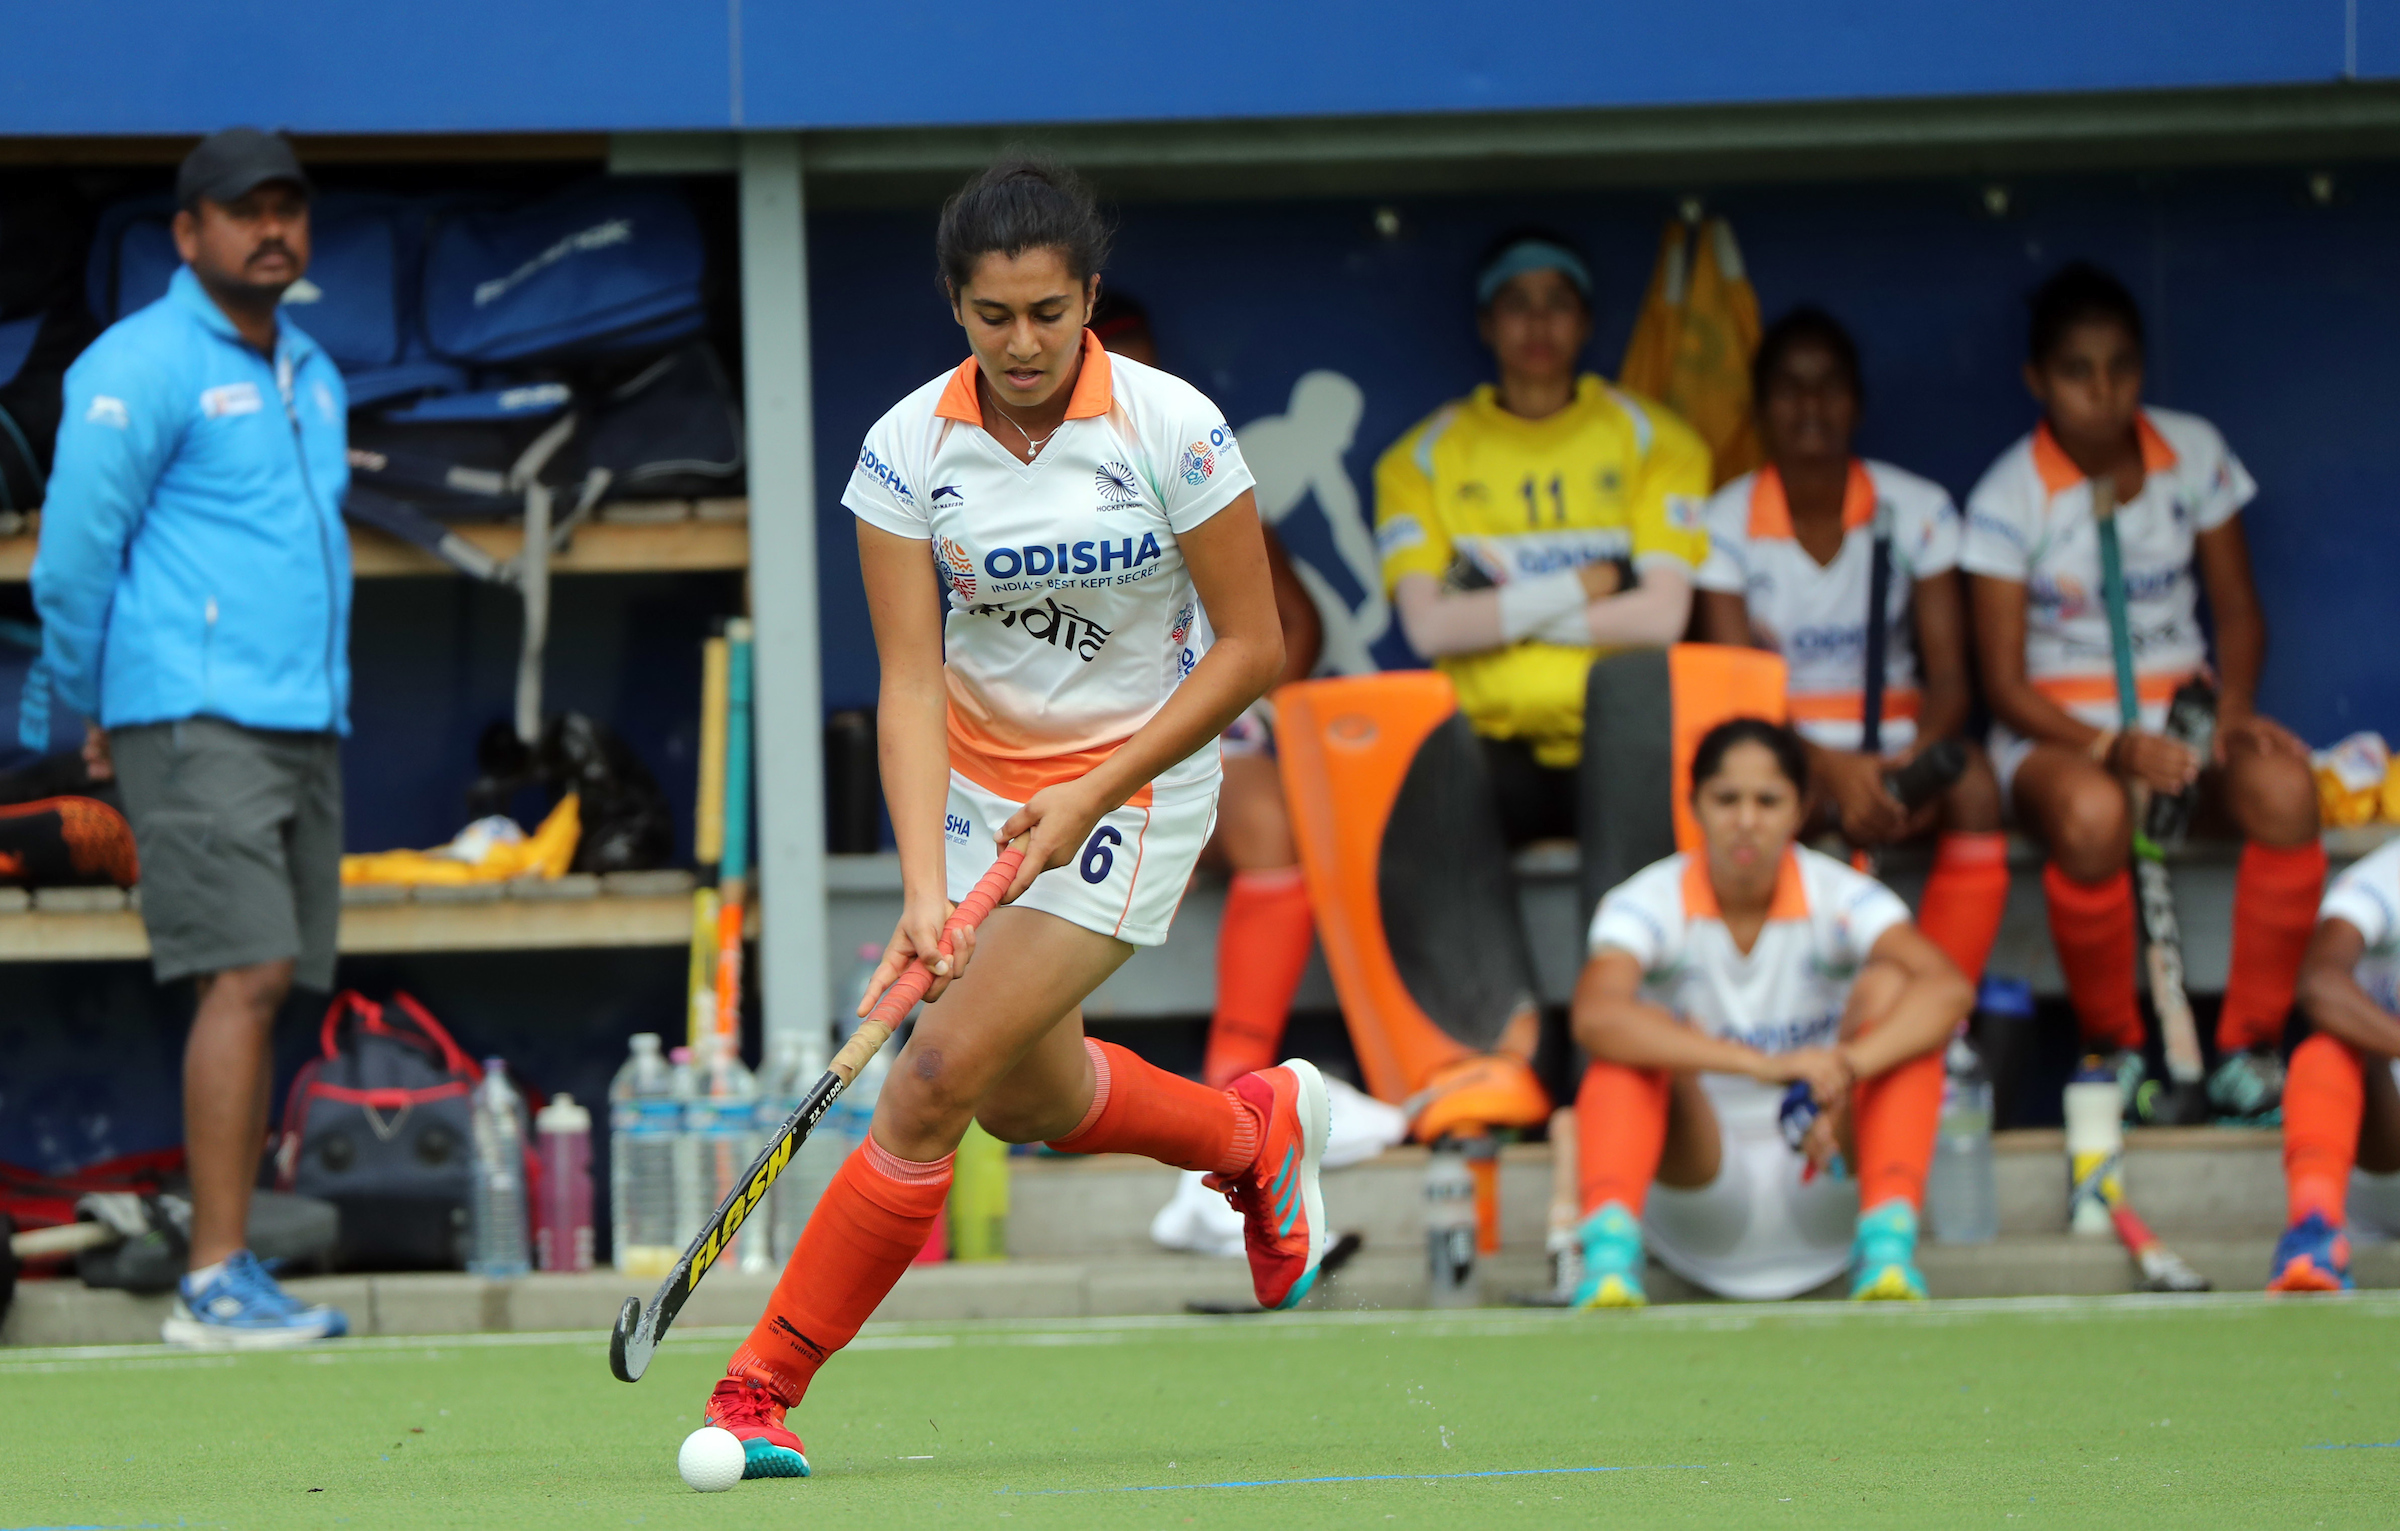 Keen to learn from drag-flickers in the Senior team - Gagandeep Kaur